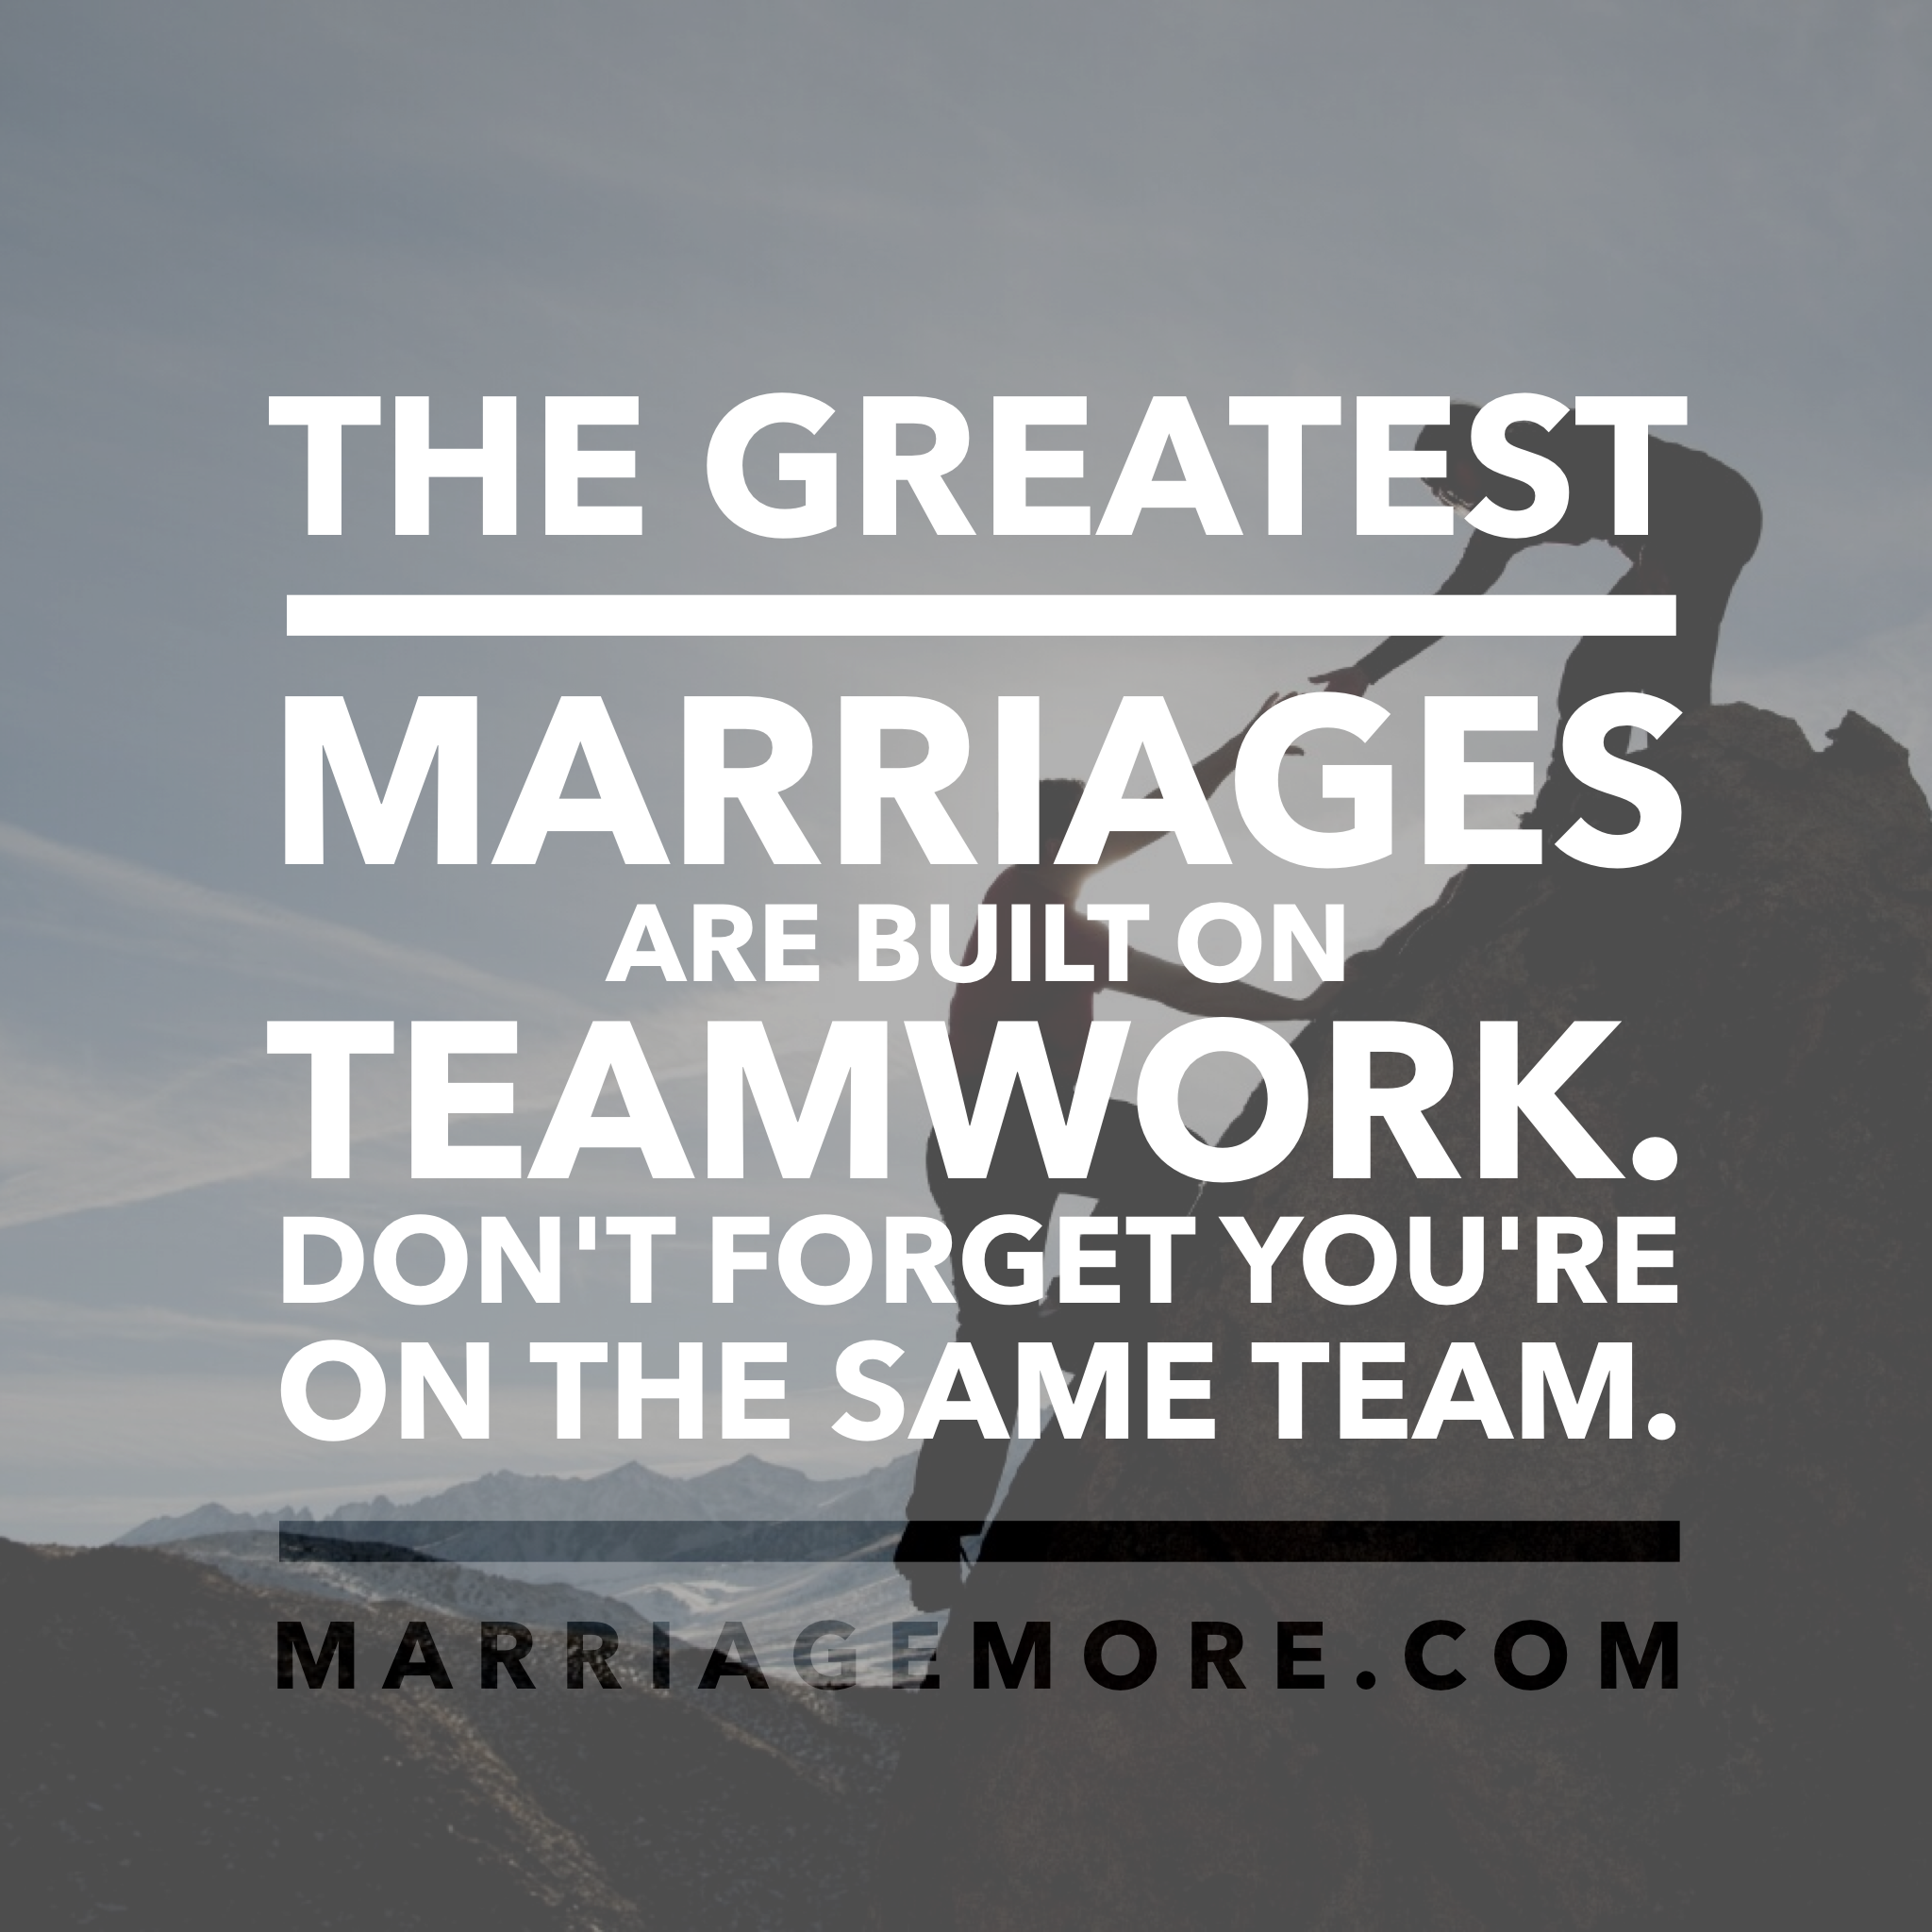 Teamwork Relationship Quotes: Marriage Quotes - Marriage Is Teamwork